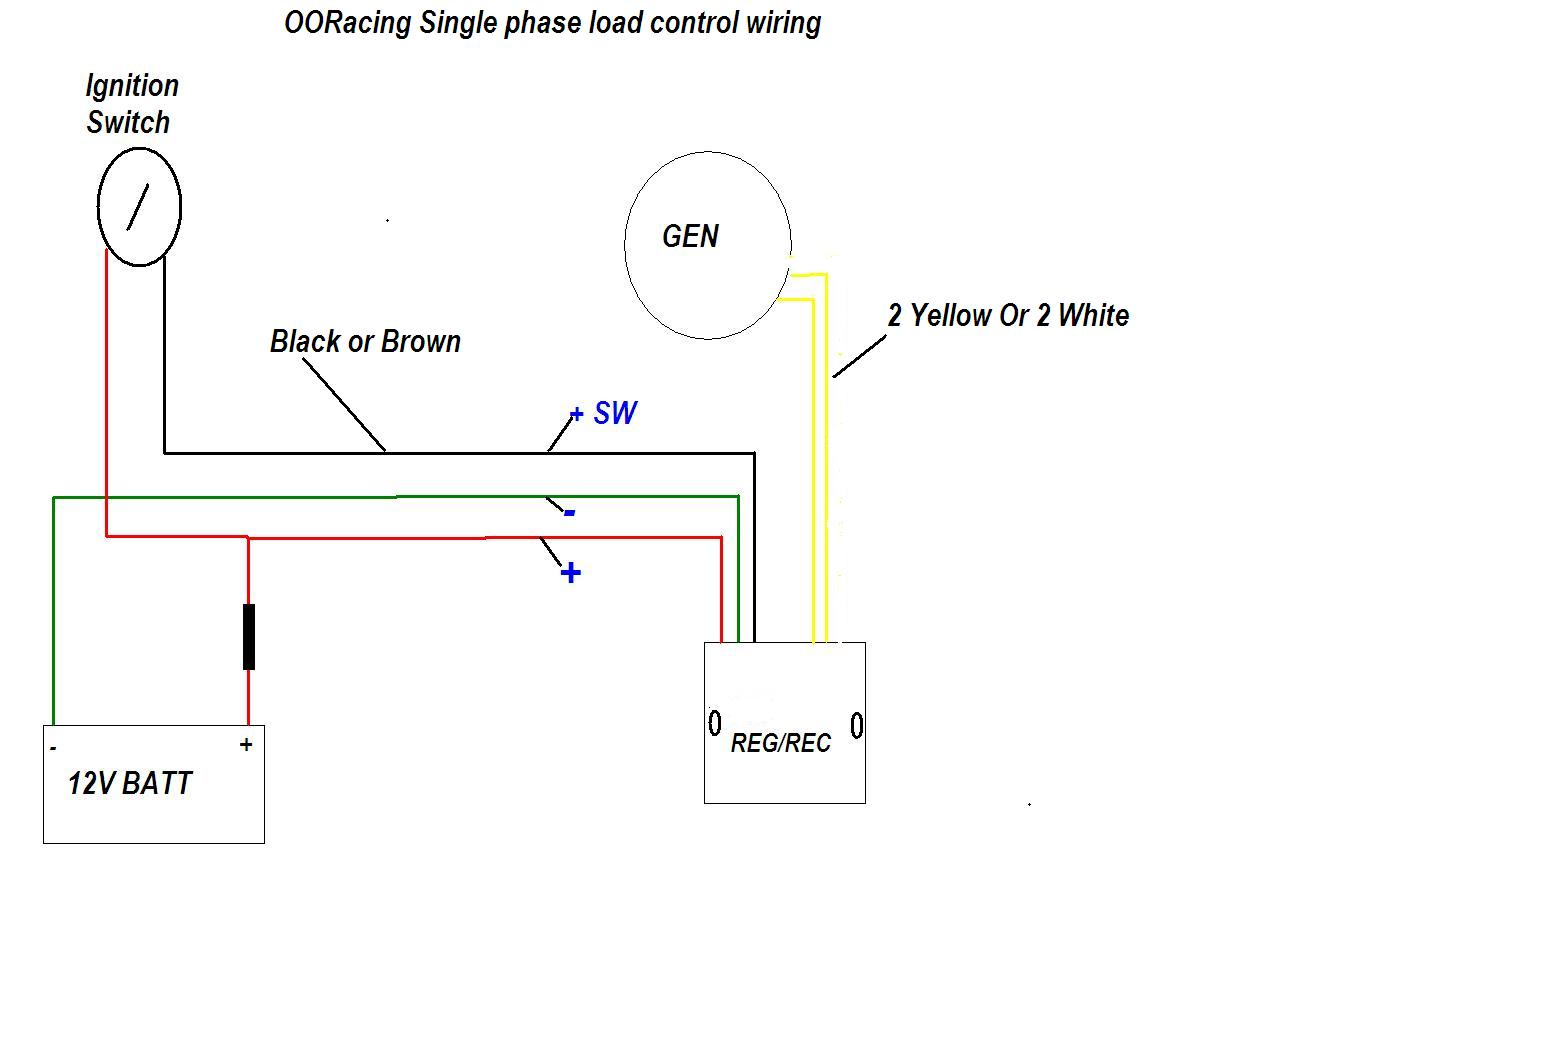 Single_phase_50W_Gen_wiring pit bike wiring diagram diagram wiring diagrams for diy car repairs inner rotor kit wiring diagram at bakdesigns.co